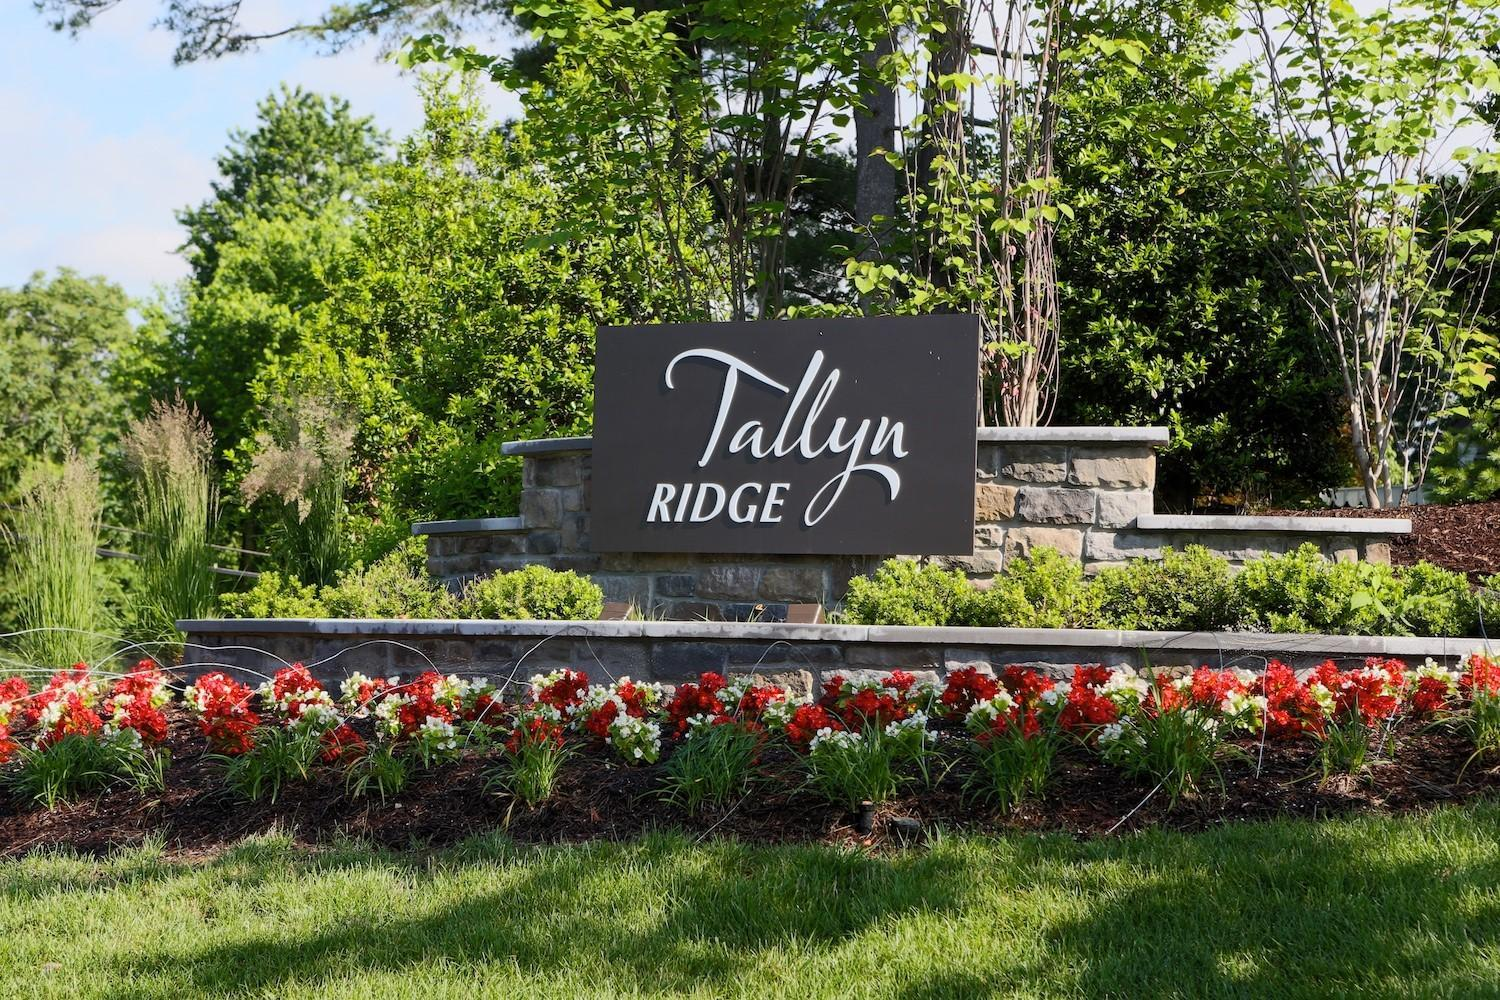 Tallyn Ridge Entrance